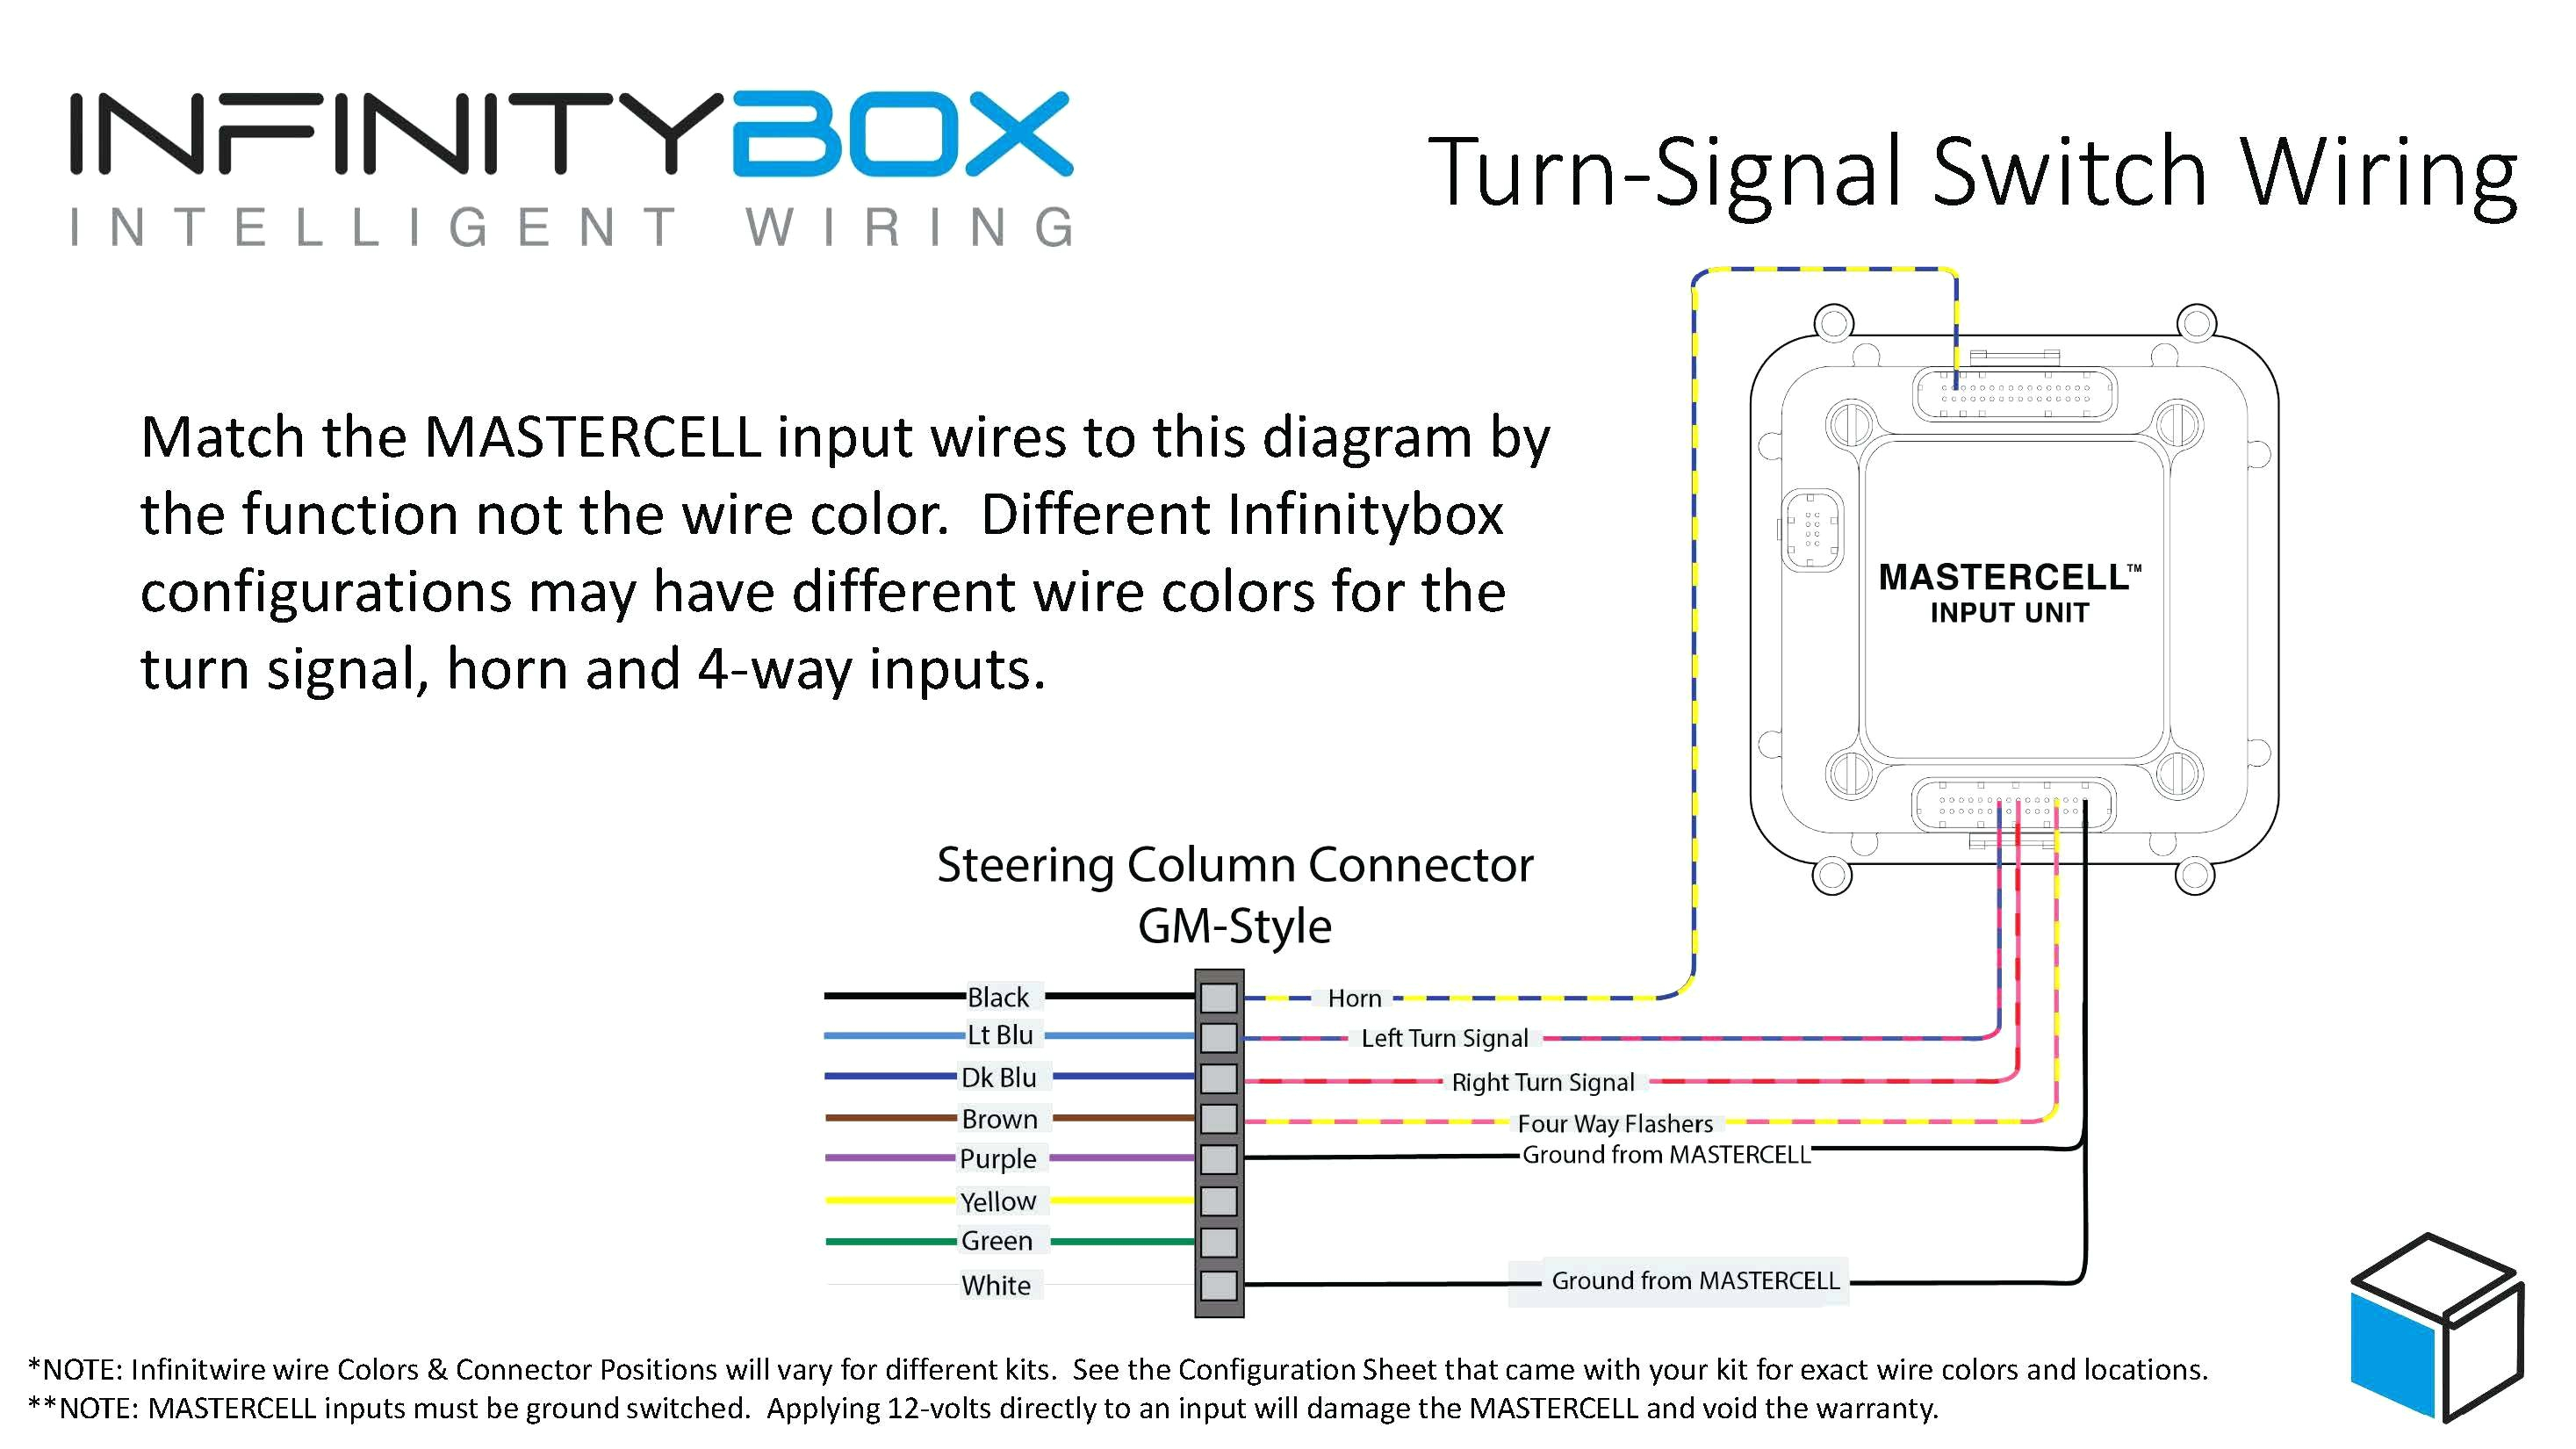 grote light wiring diagram wiring diagramgrote wiring harness diagram wiring diagram loadwiring diagram for a grote